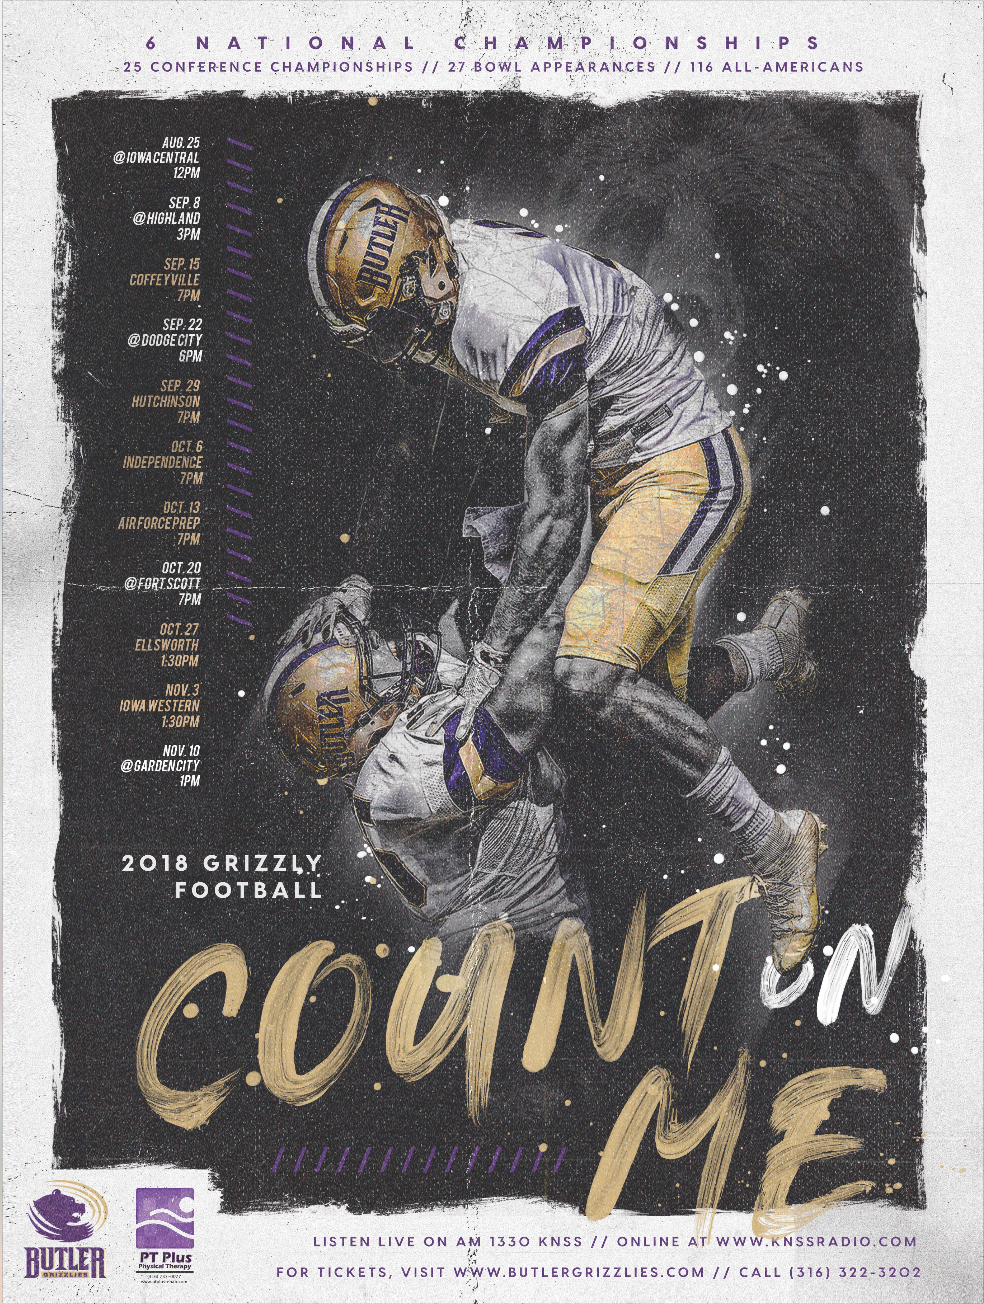 Butler County Community College Football Schedule Poster Graphic